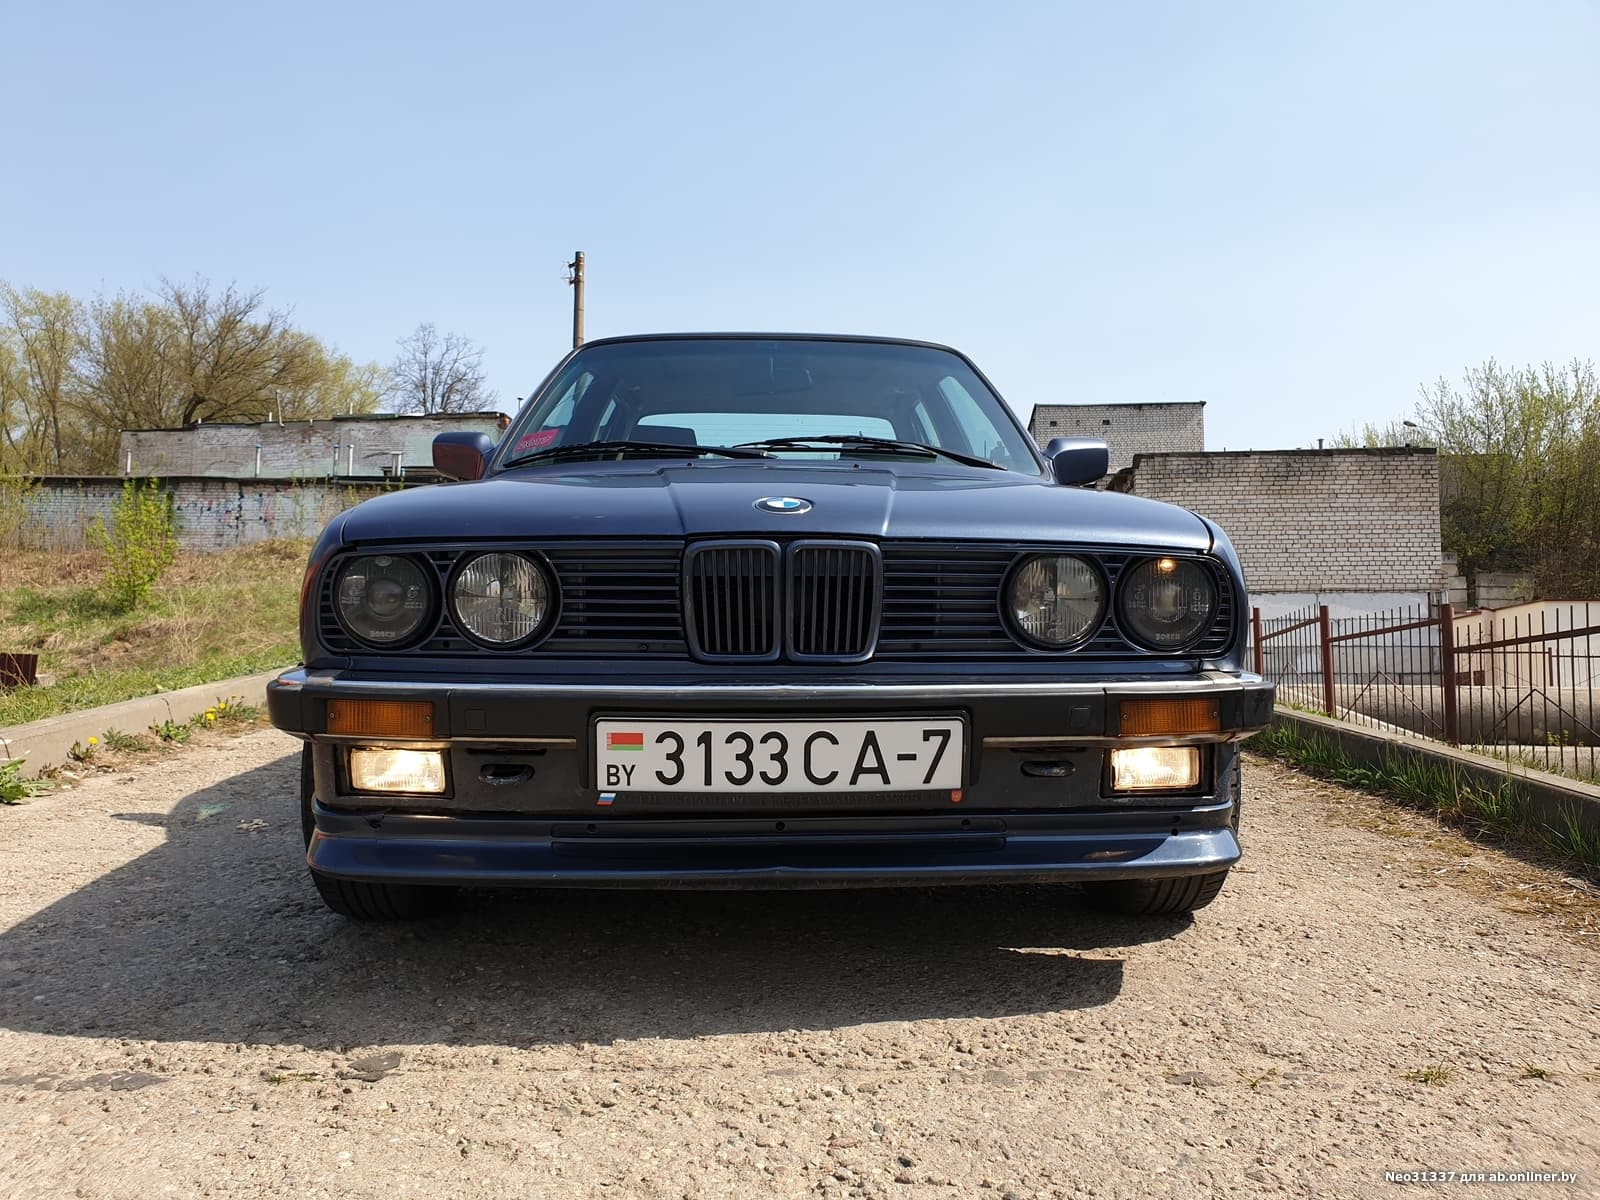 BMW 318 E30 is